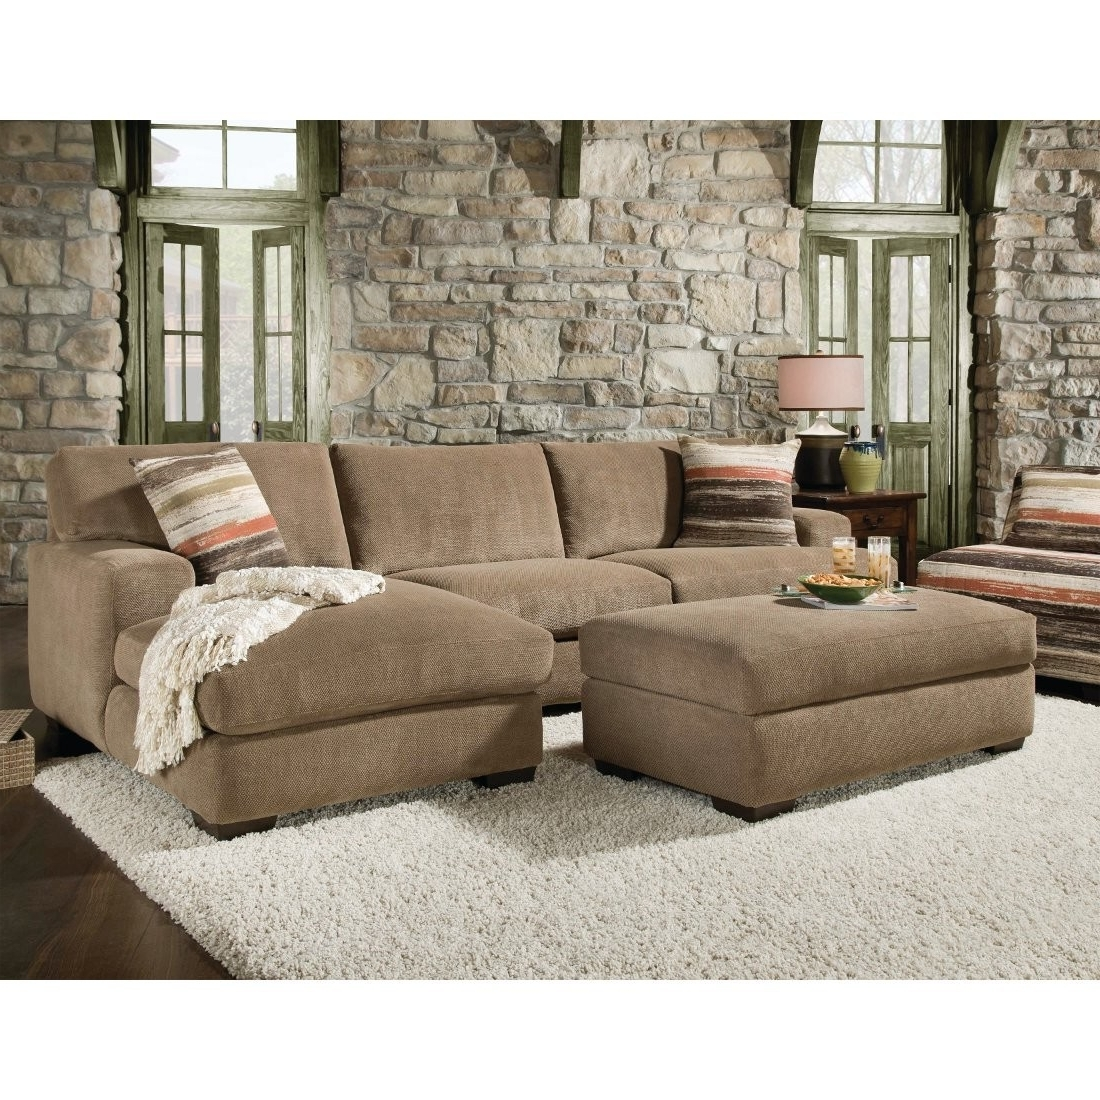 Beautiful Sectional Sofa With Chaise And Ottoman Pictures In 2018 Sectionals With Chaise And Ottoman (View 2 of 15)